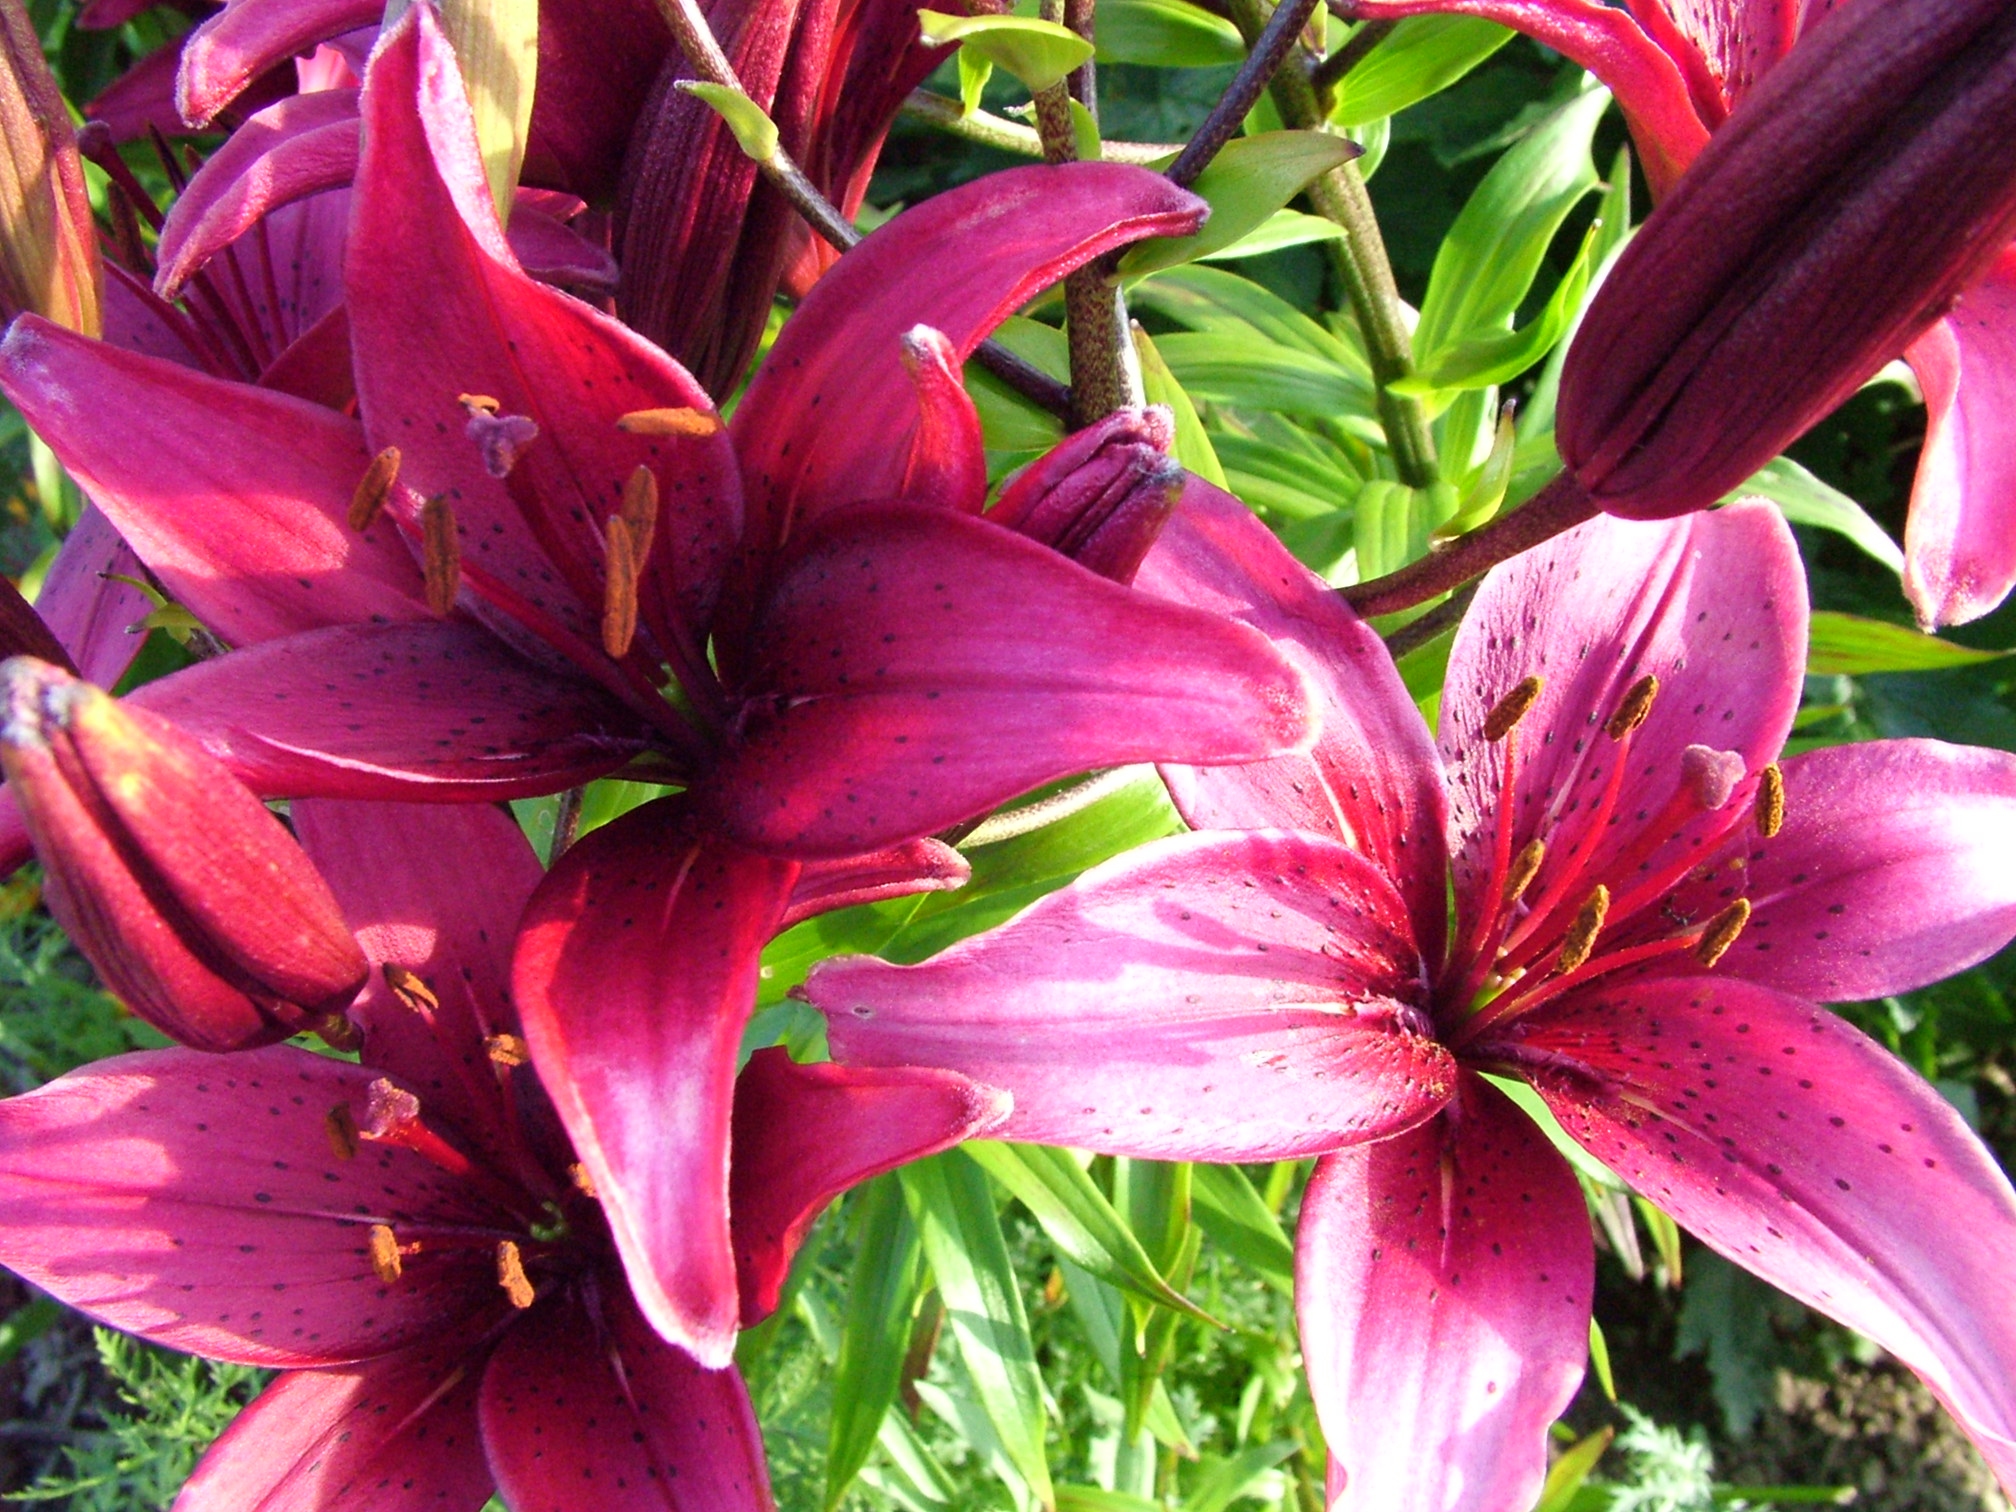 Best images about lily flower on pinterest flower wallpaper 2016x1512 izmirmasajfo